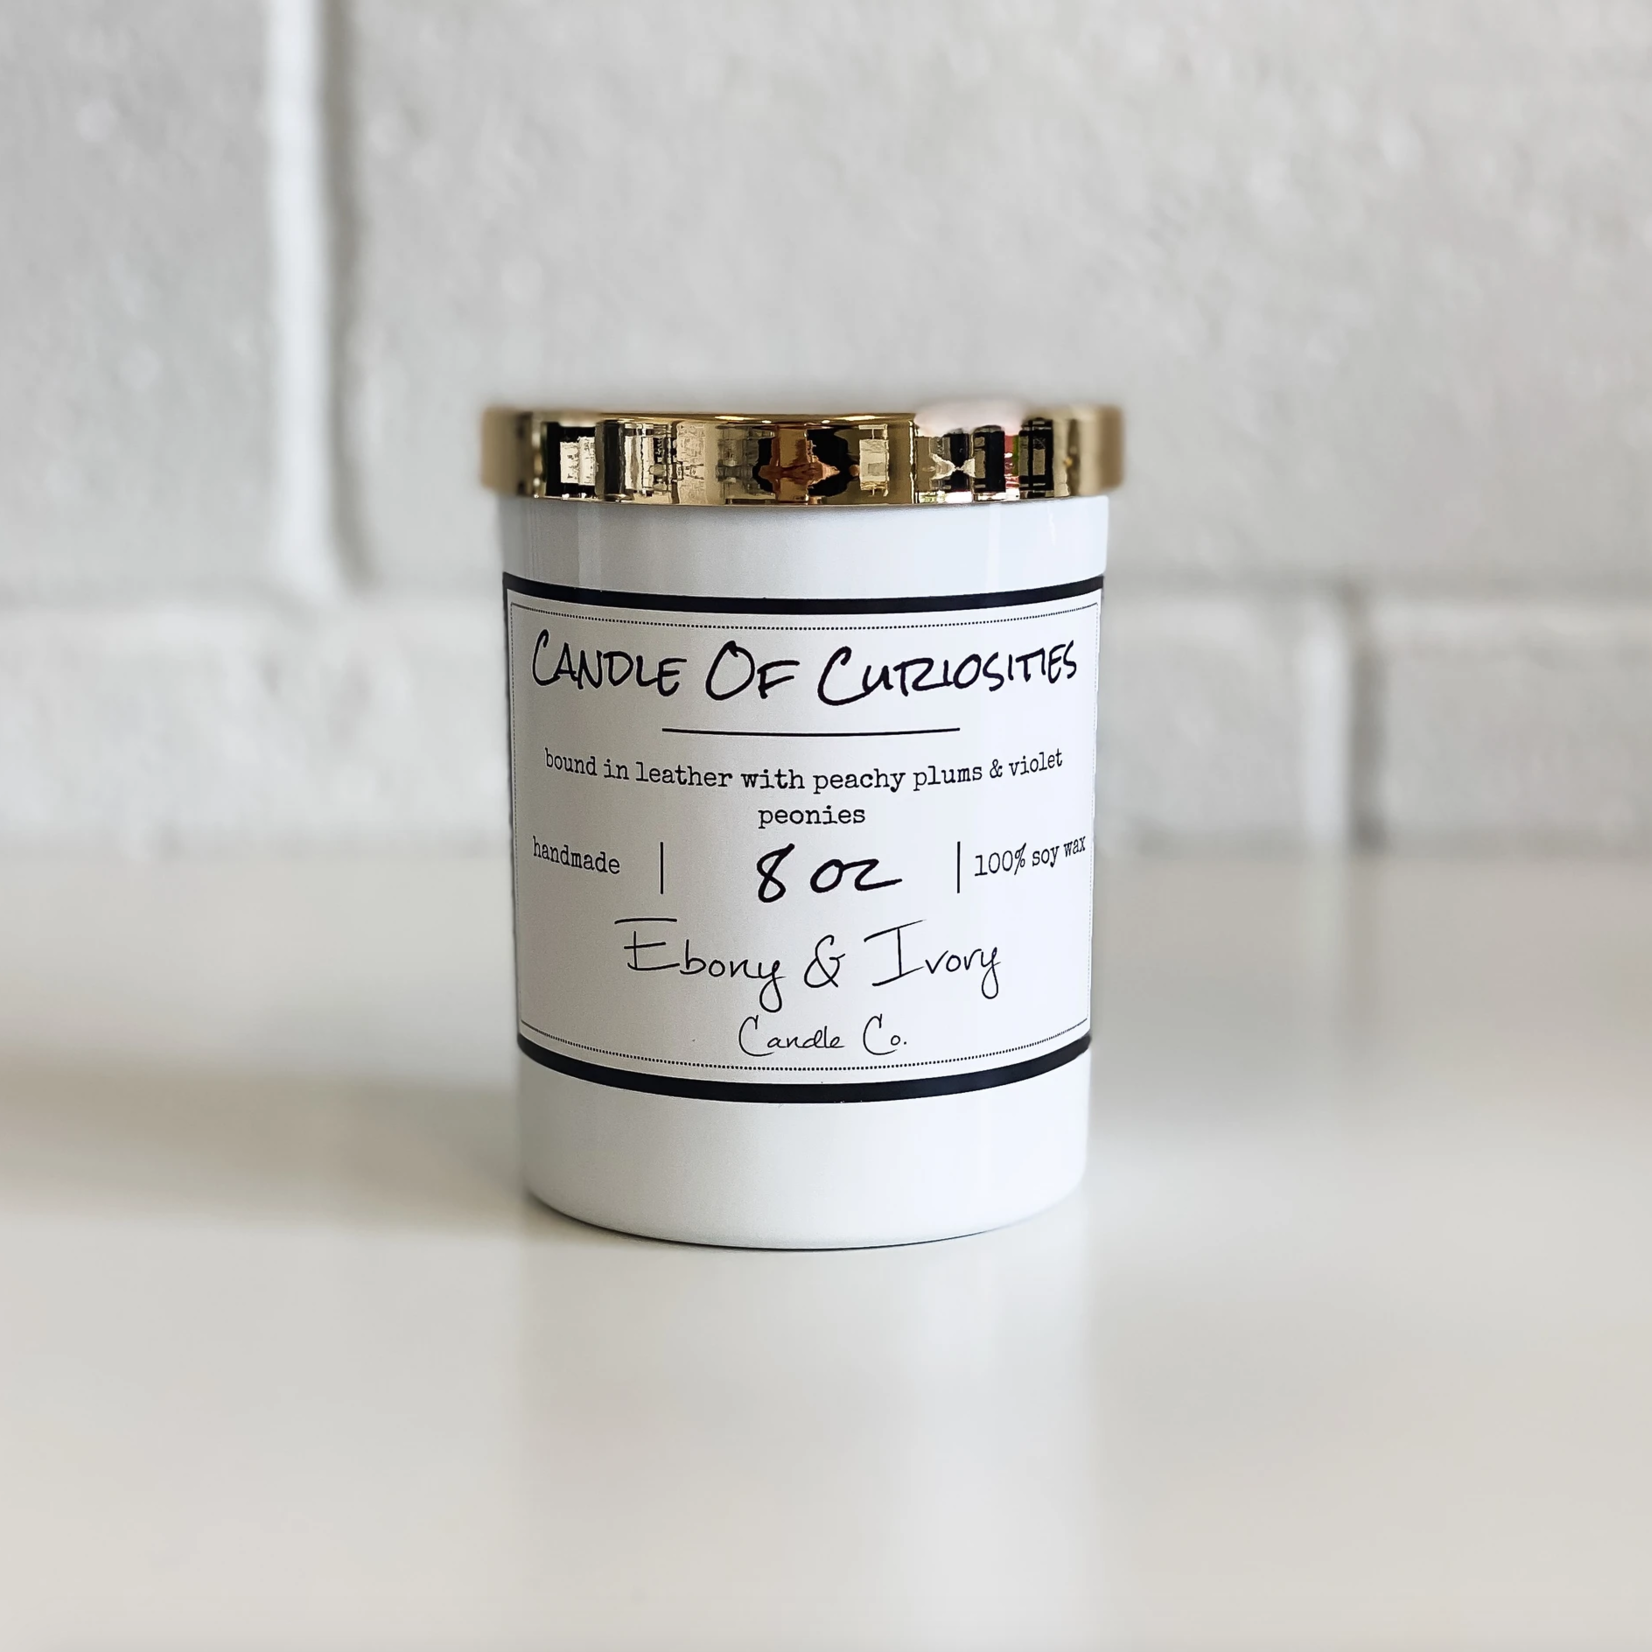 Ebony & Ivory Candle Co. Candle of Curiosities- 8oz